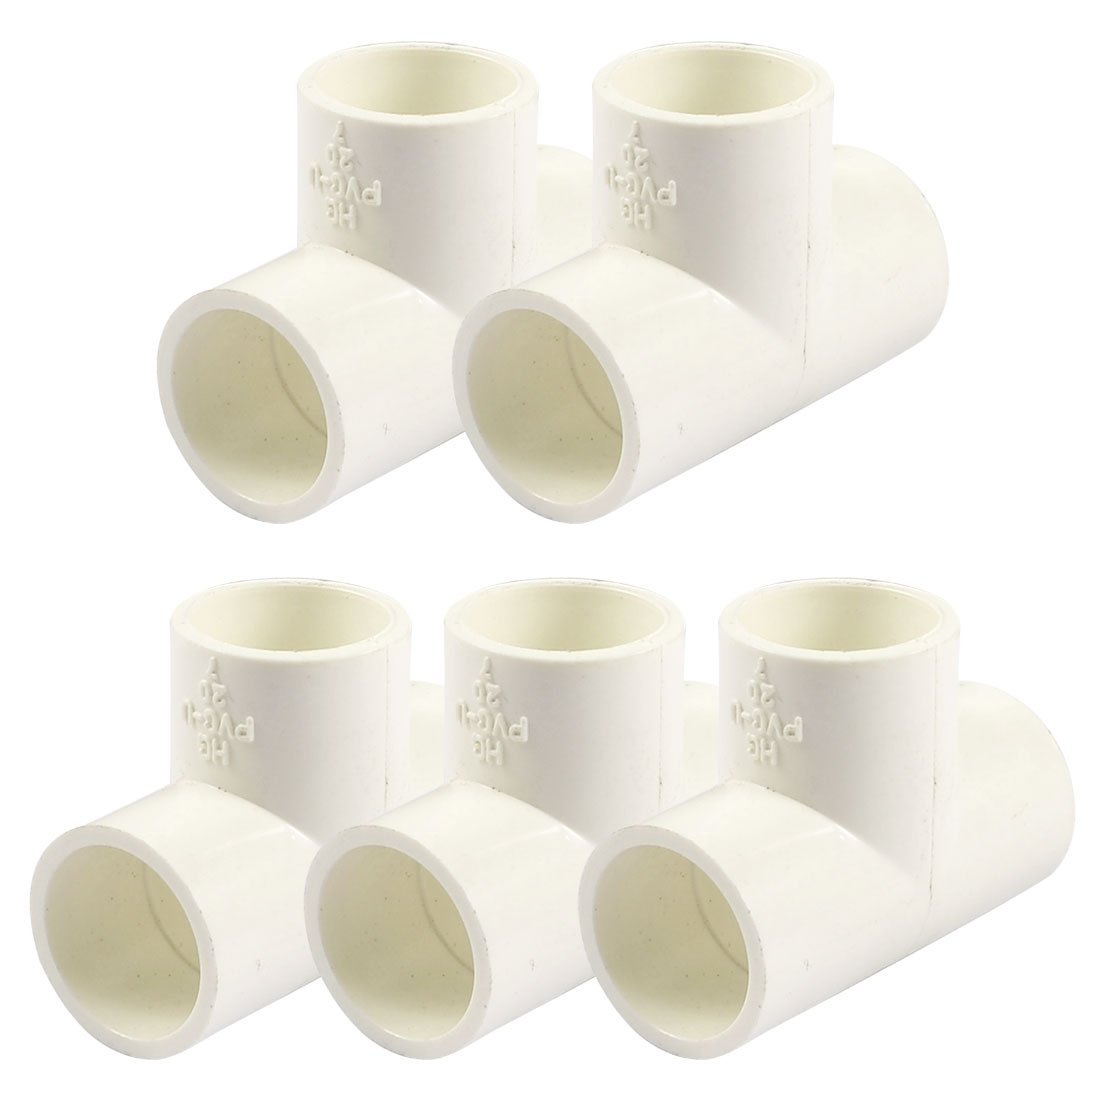 Mm pvc tee way water pipe tube adapter connectors